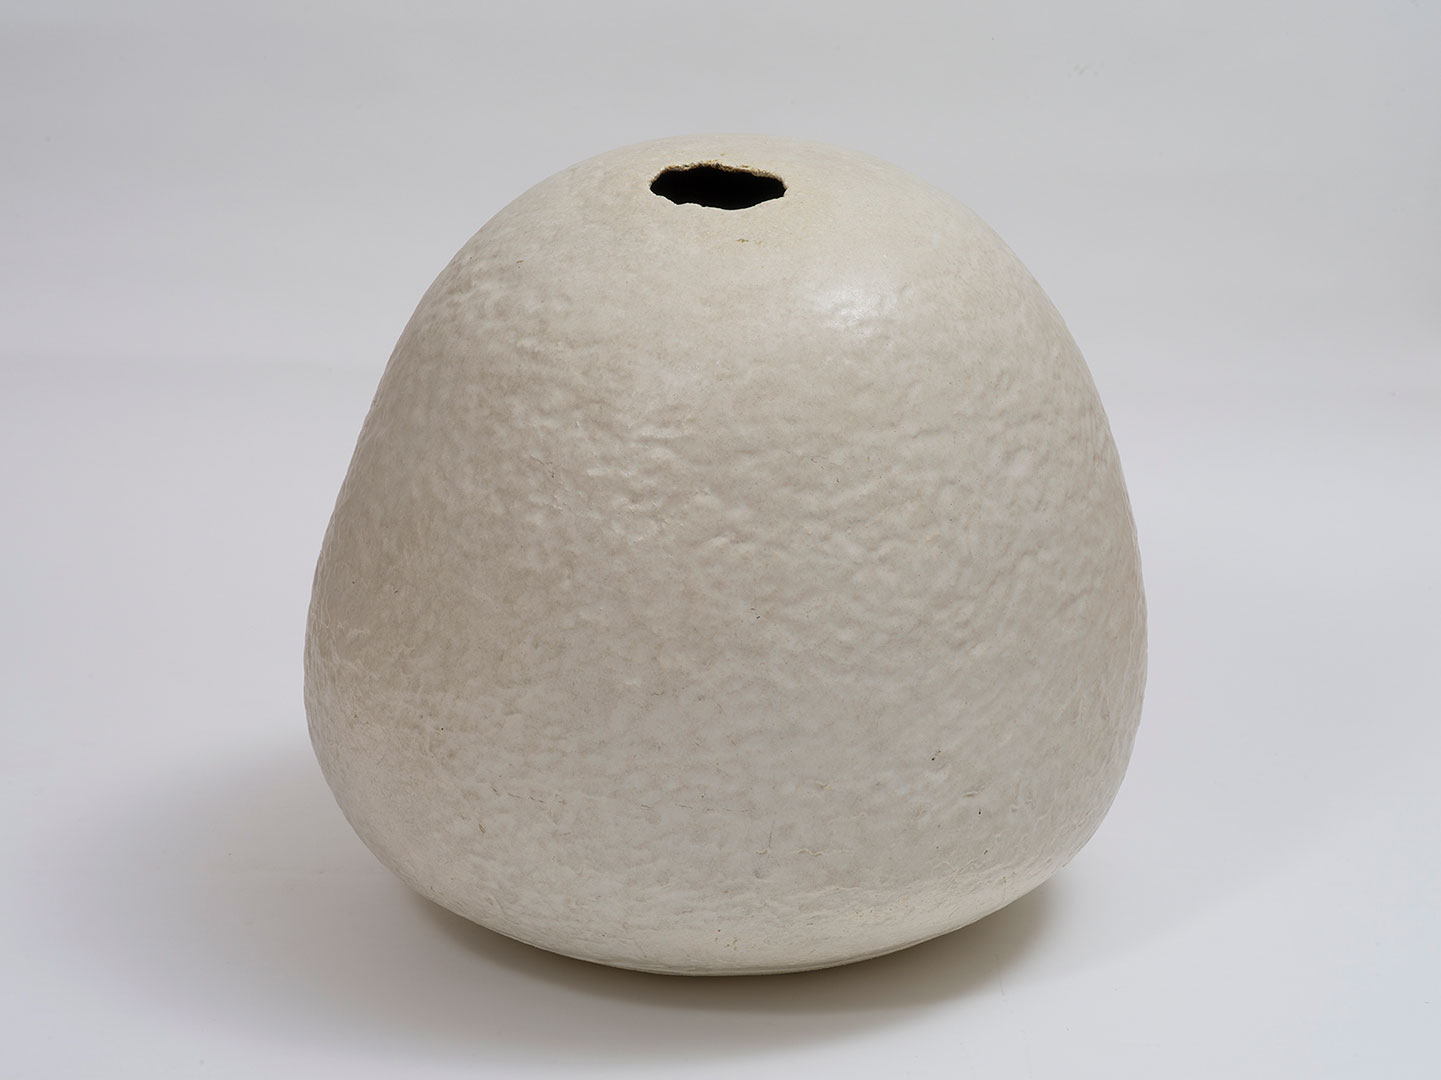 Marea GAZZARD 'Floor pot' 1972 | coiled stoneware | QUT Art Collection | Purchased 1975 | Photo by Carl Warner